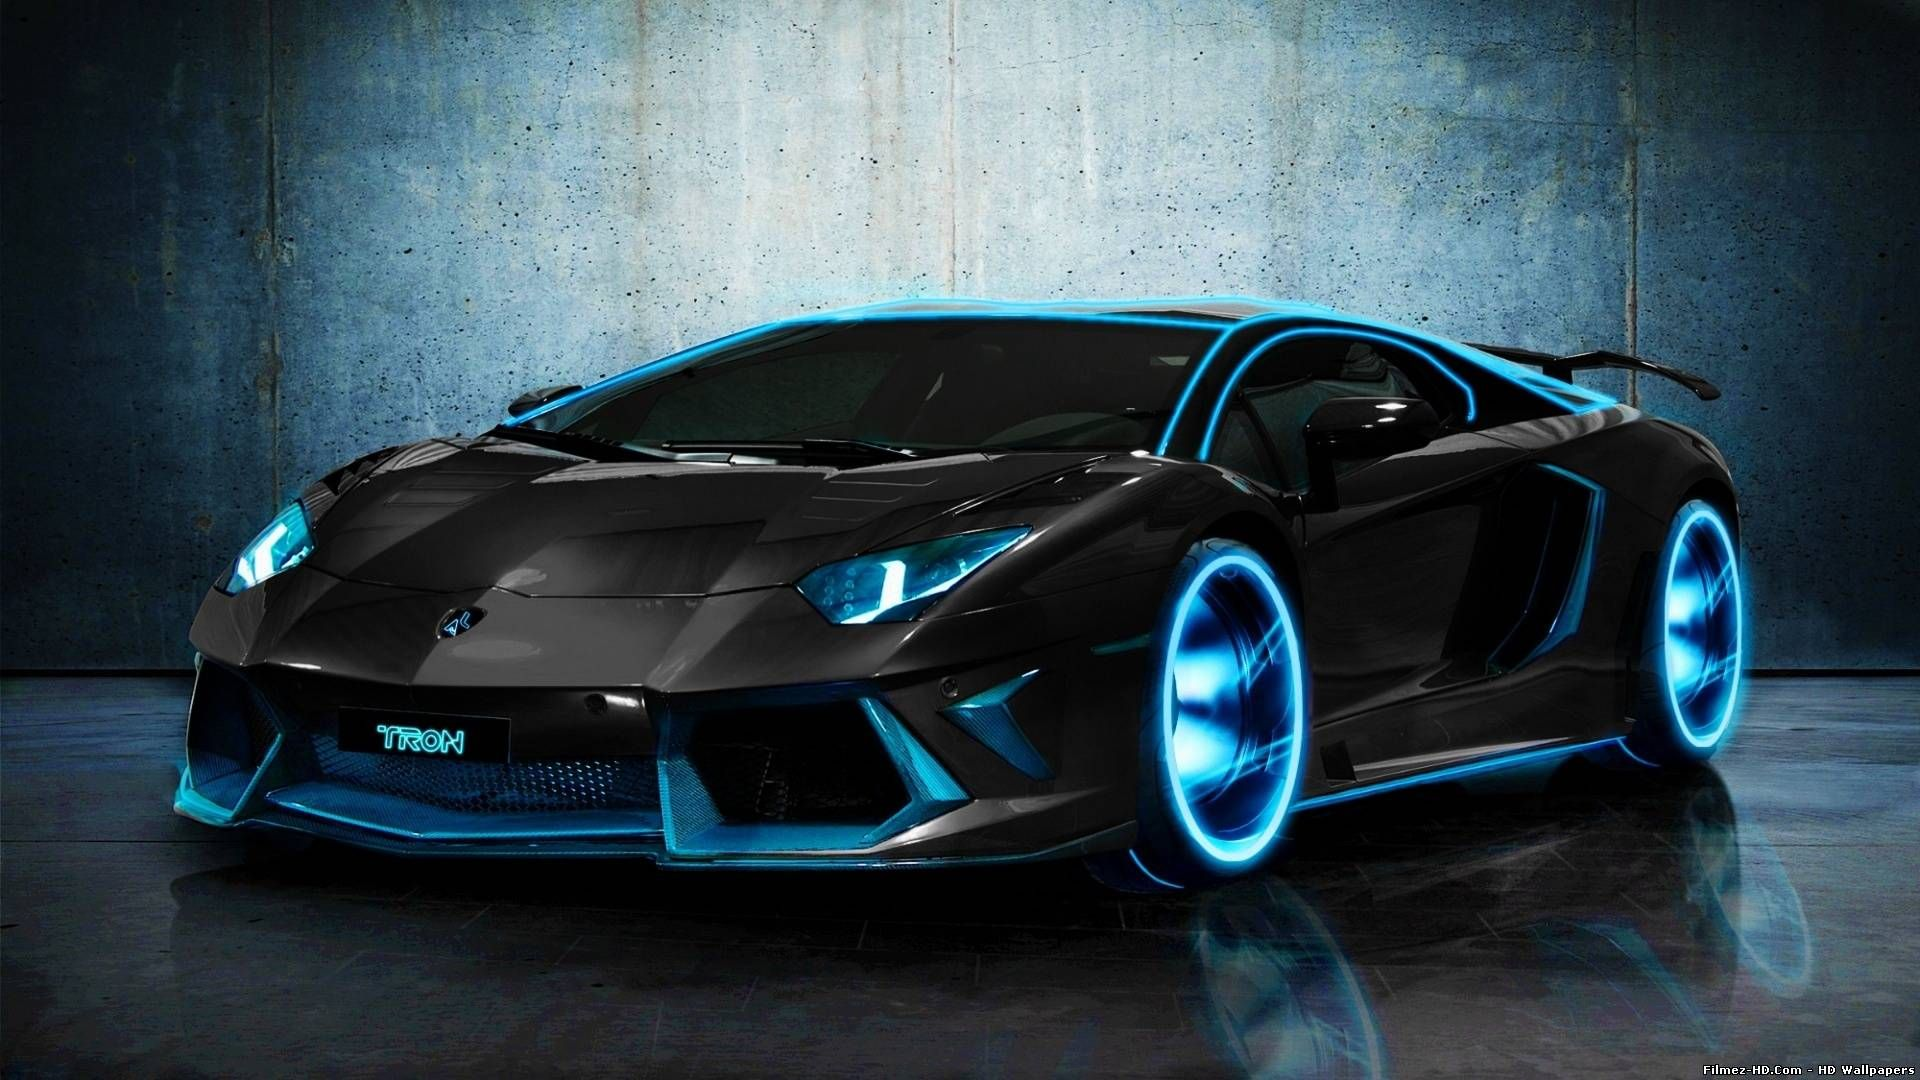 Hd Wallpapers For Pc Full Screen Wallpaper Cave Sports Car Wallpaper Lamborghini Cars Lamborghini Aventador Wallpaper